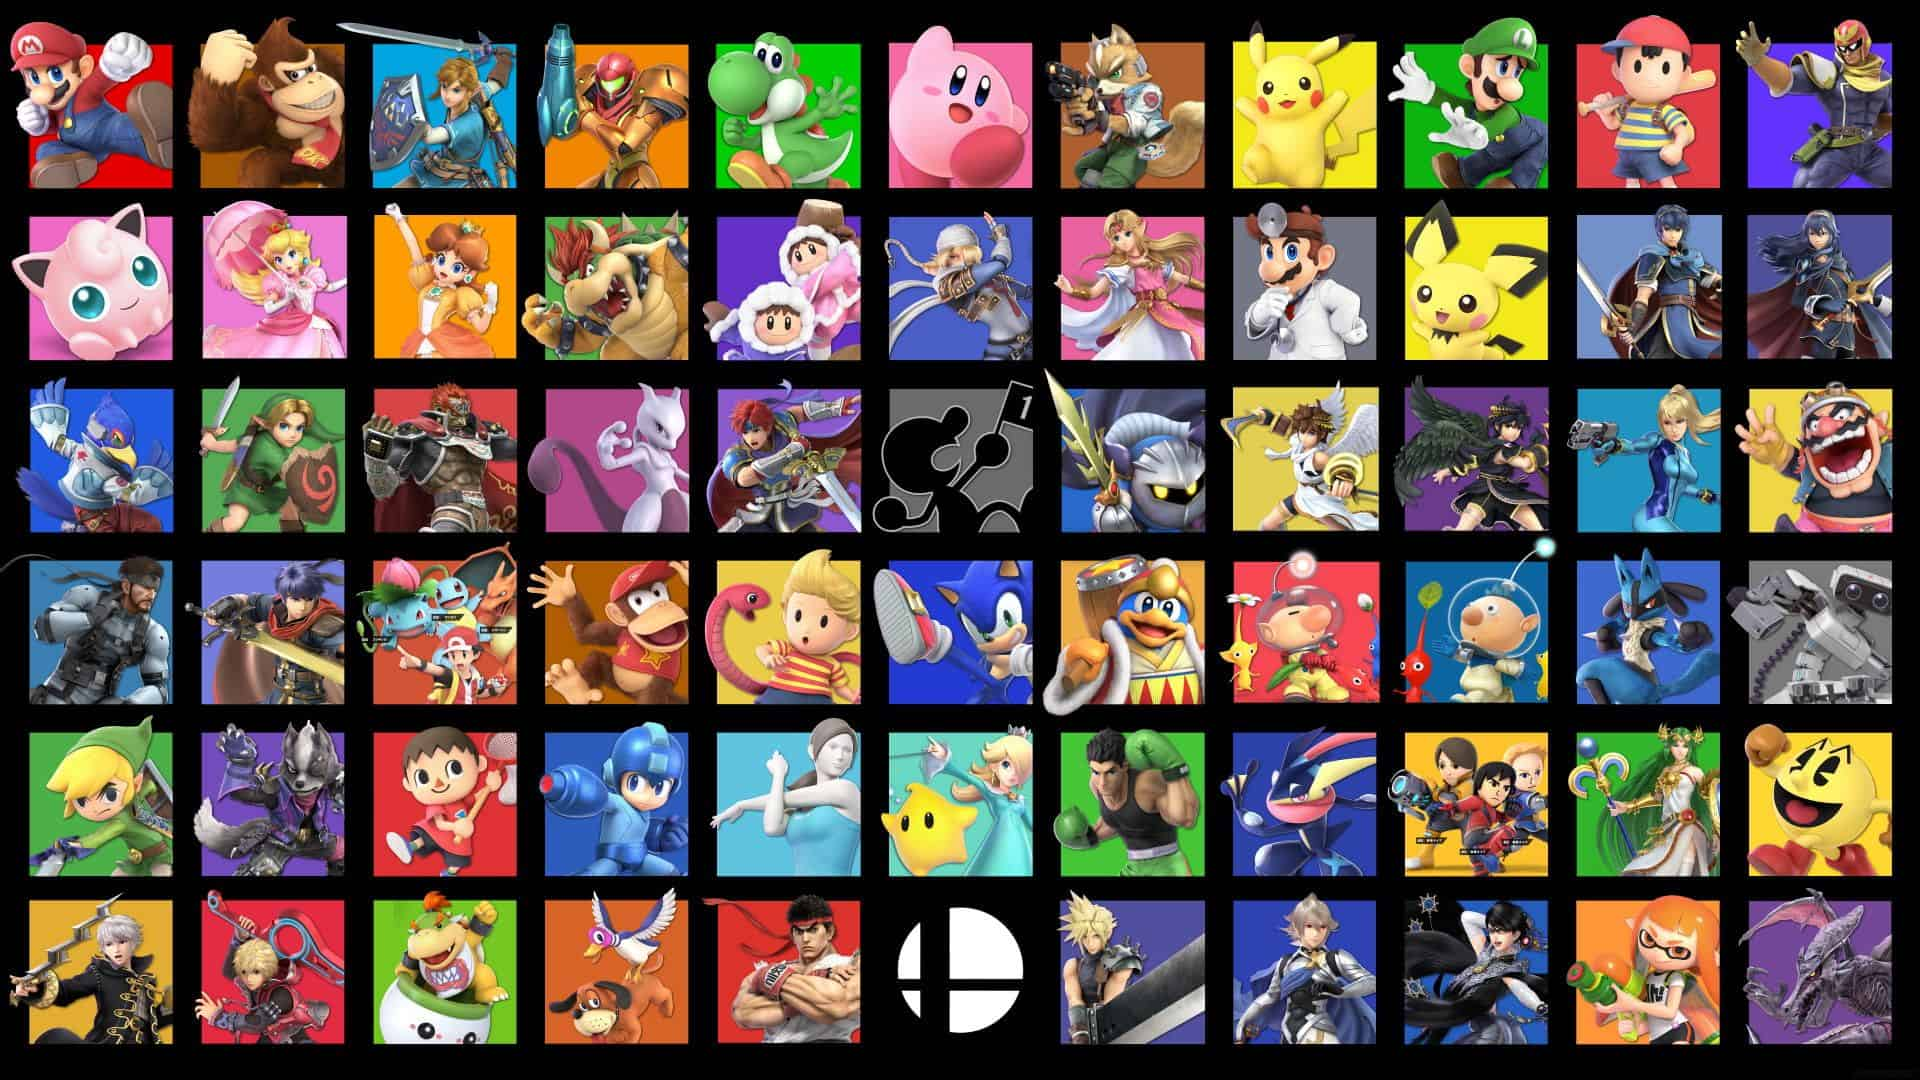 Immagine_1_Editoriale_Smash